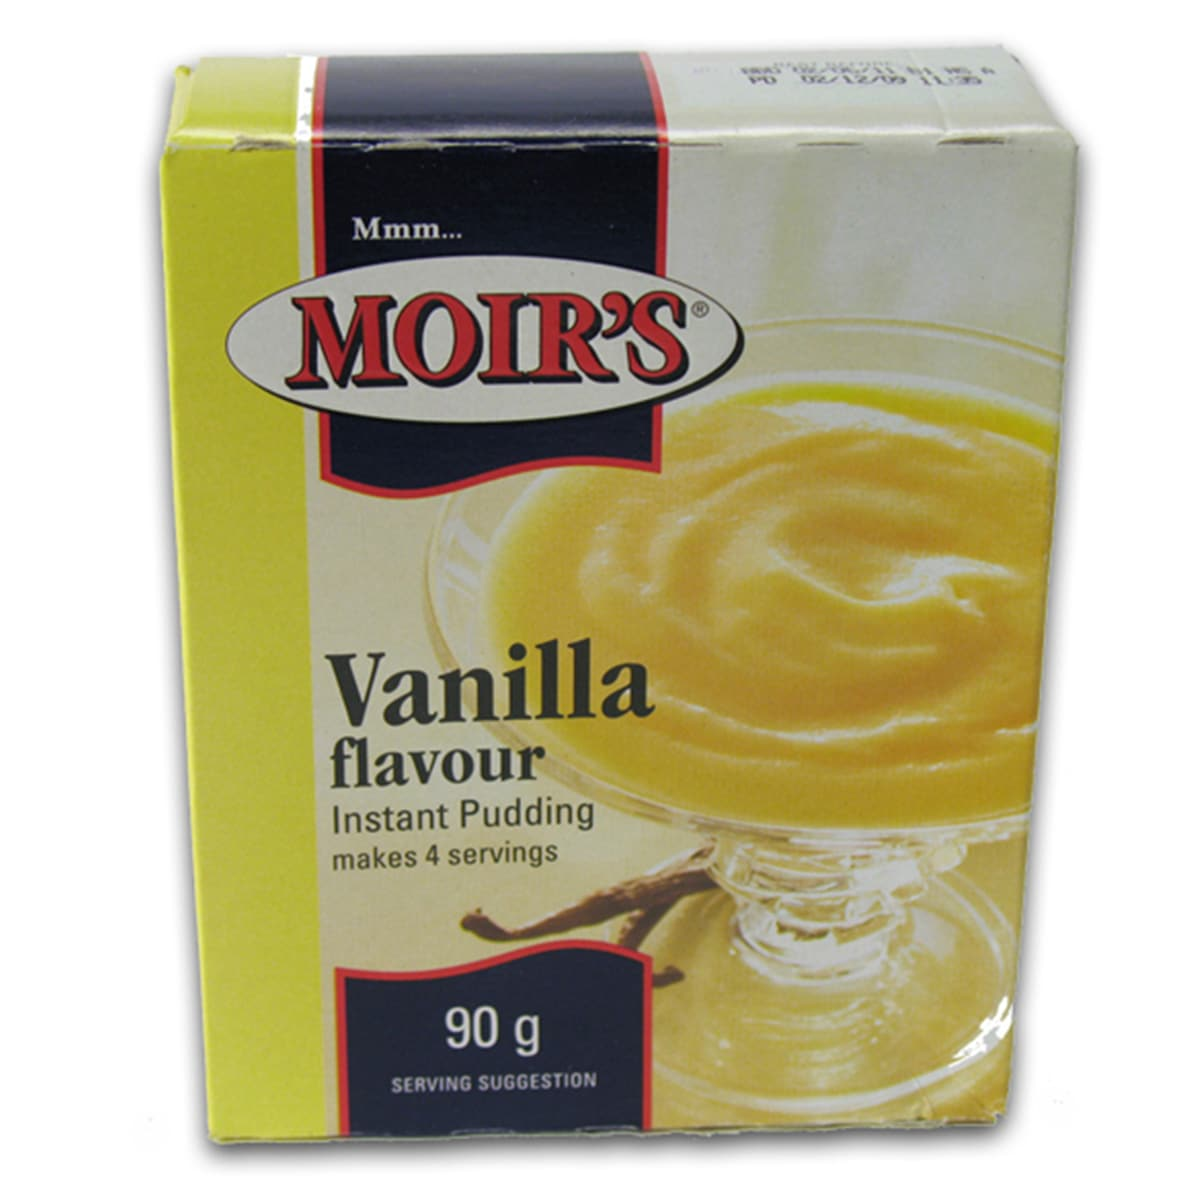 Buy Moirs Vanilla Flavour Instant Pudding - 90 gm